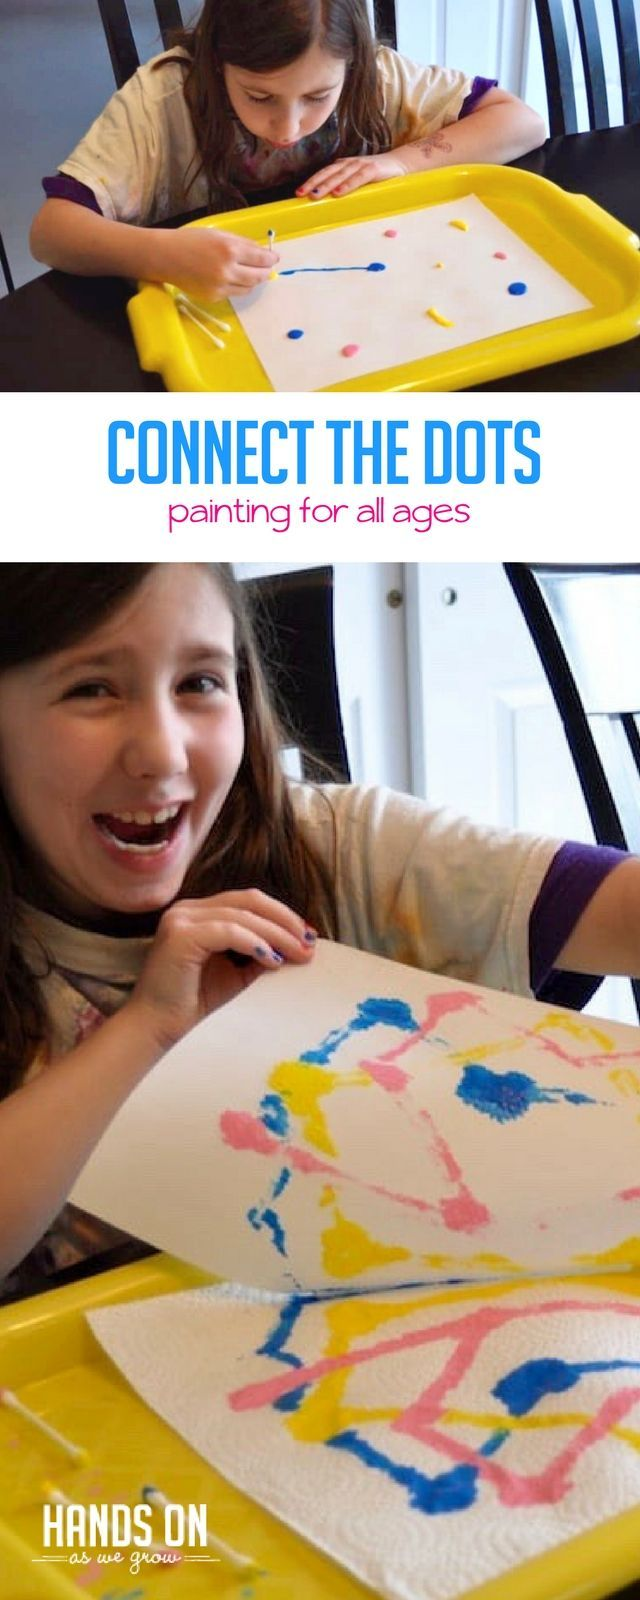 Get all the kids painting in seconds with a versatile connect the dot painting activity!   https://handsonaswegrow.com/connect-dots-painting/